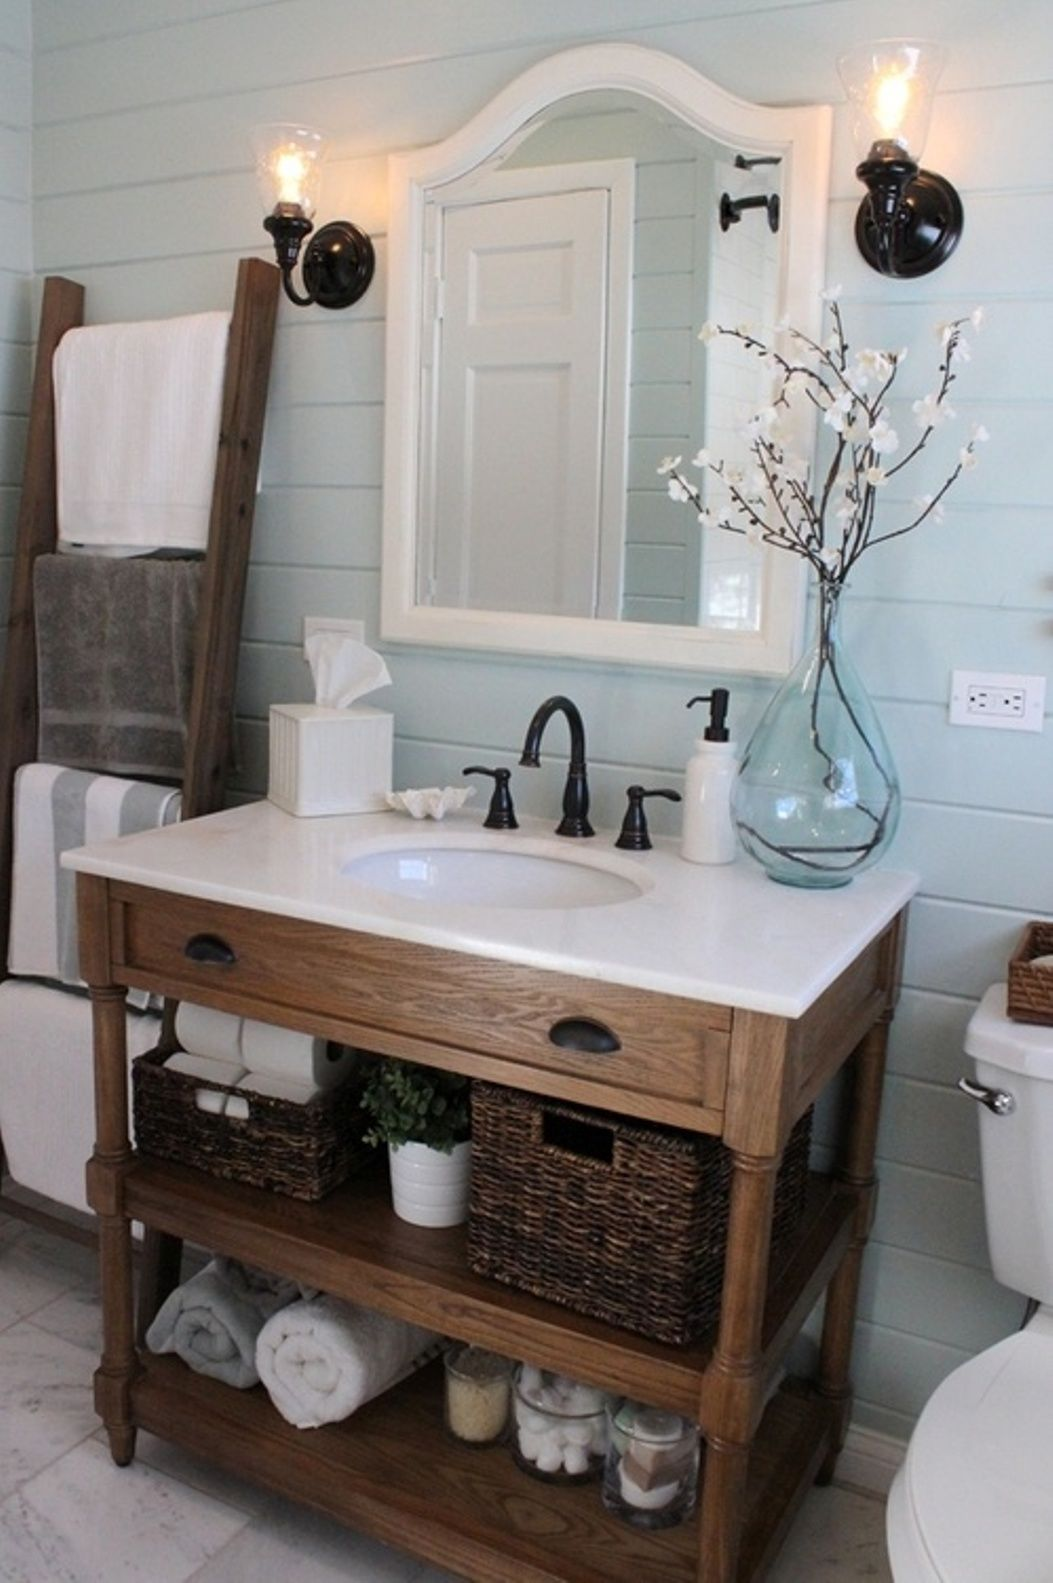 17 inspiring rustic bathroom decor ideas for cozy home for Bathroom accessories design ideas